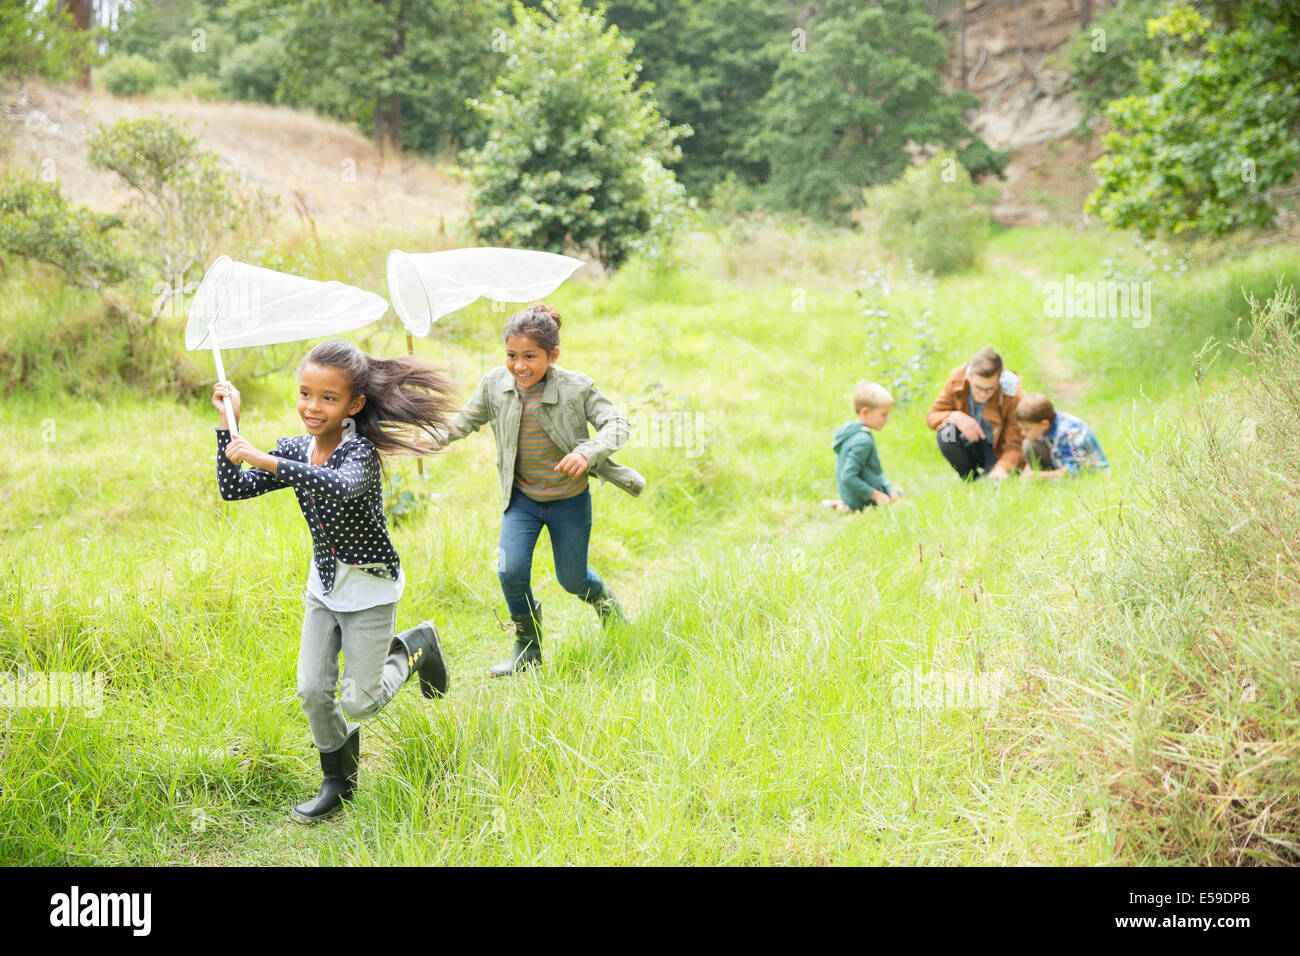 Children playing with butterfly nets on dirt path - Stock Image